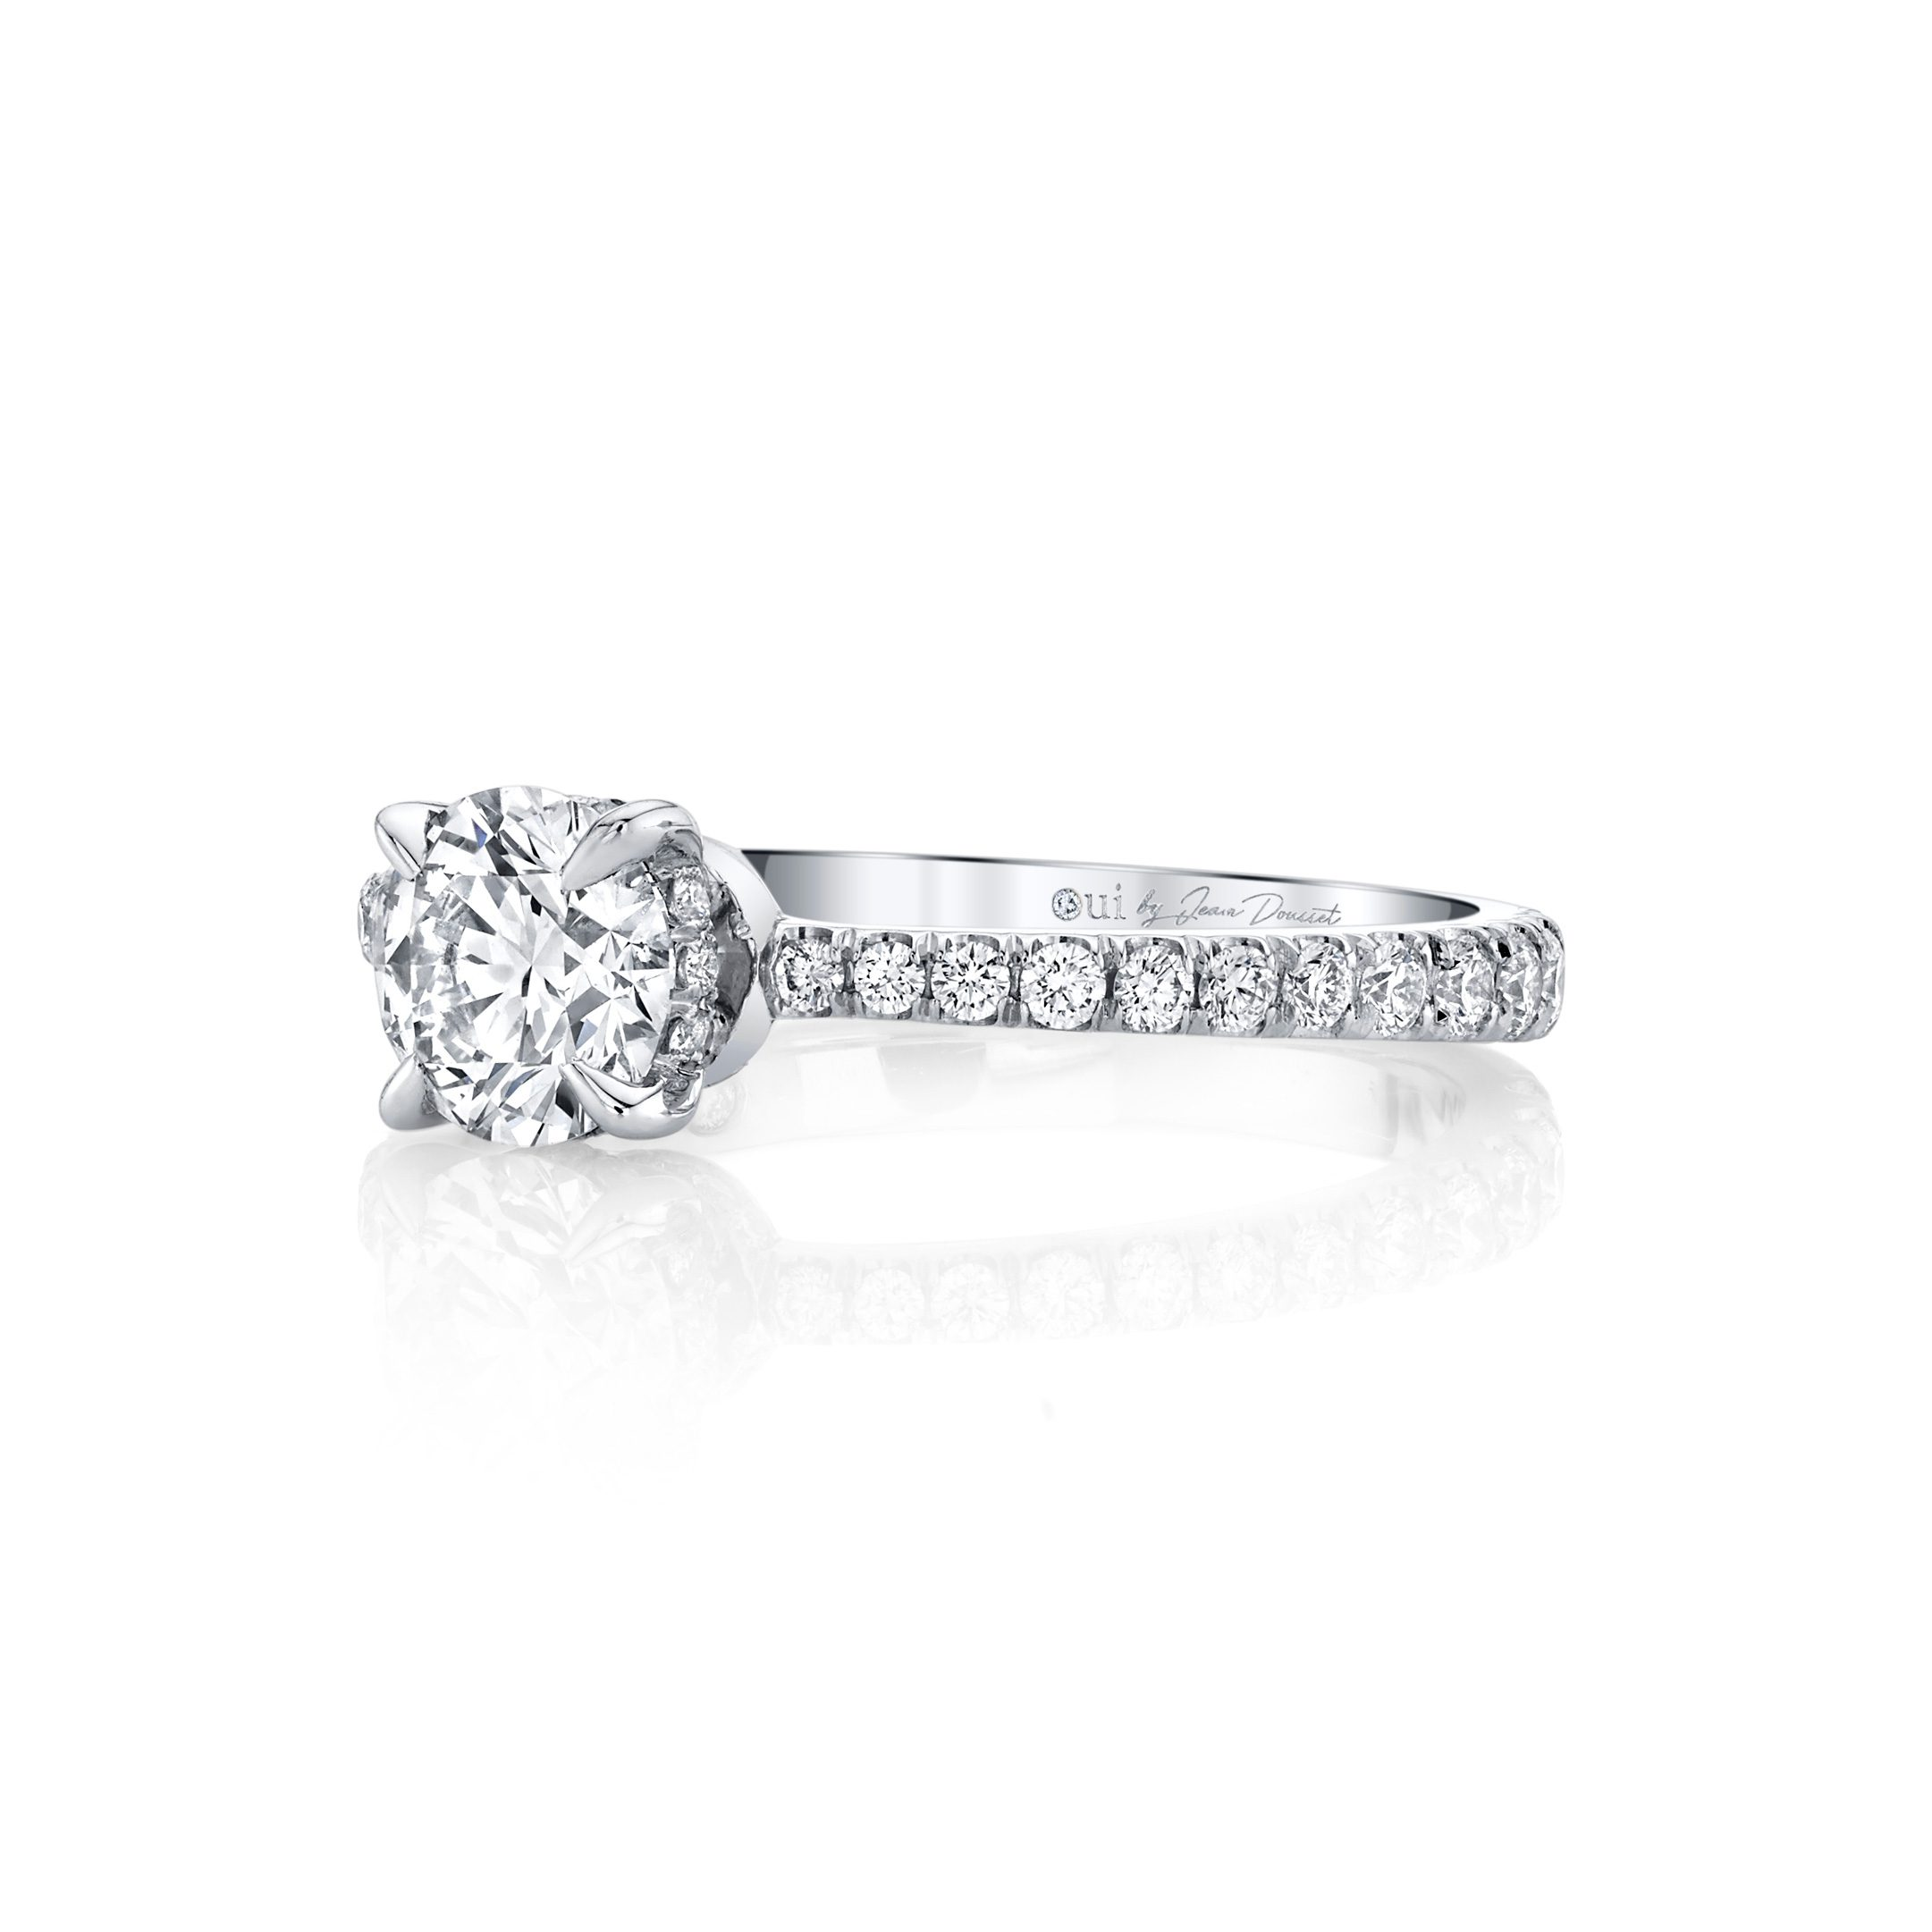 Eloise Round Brilliant Solitaire Engagement Ring with a diamond pavé band in 18k White Gold Side View by Oui by Jean Dousset